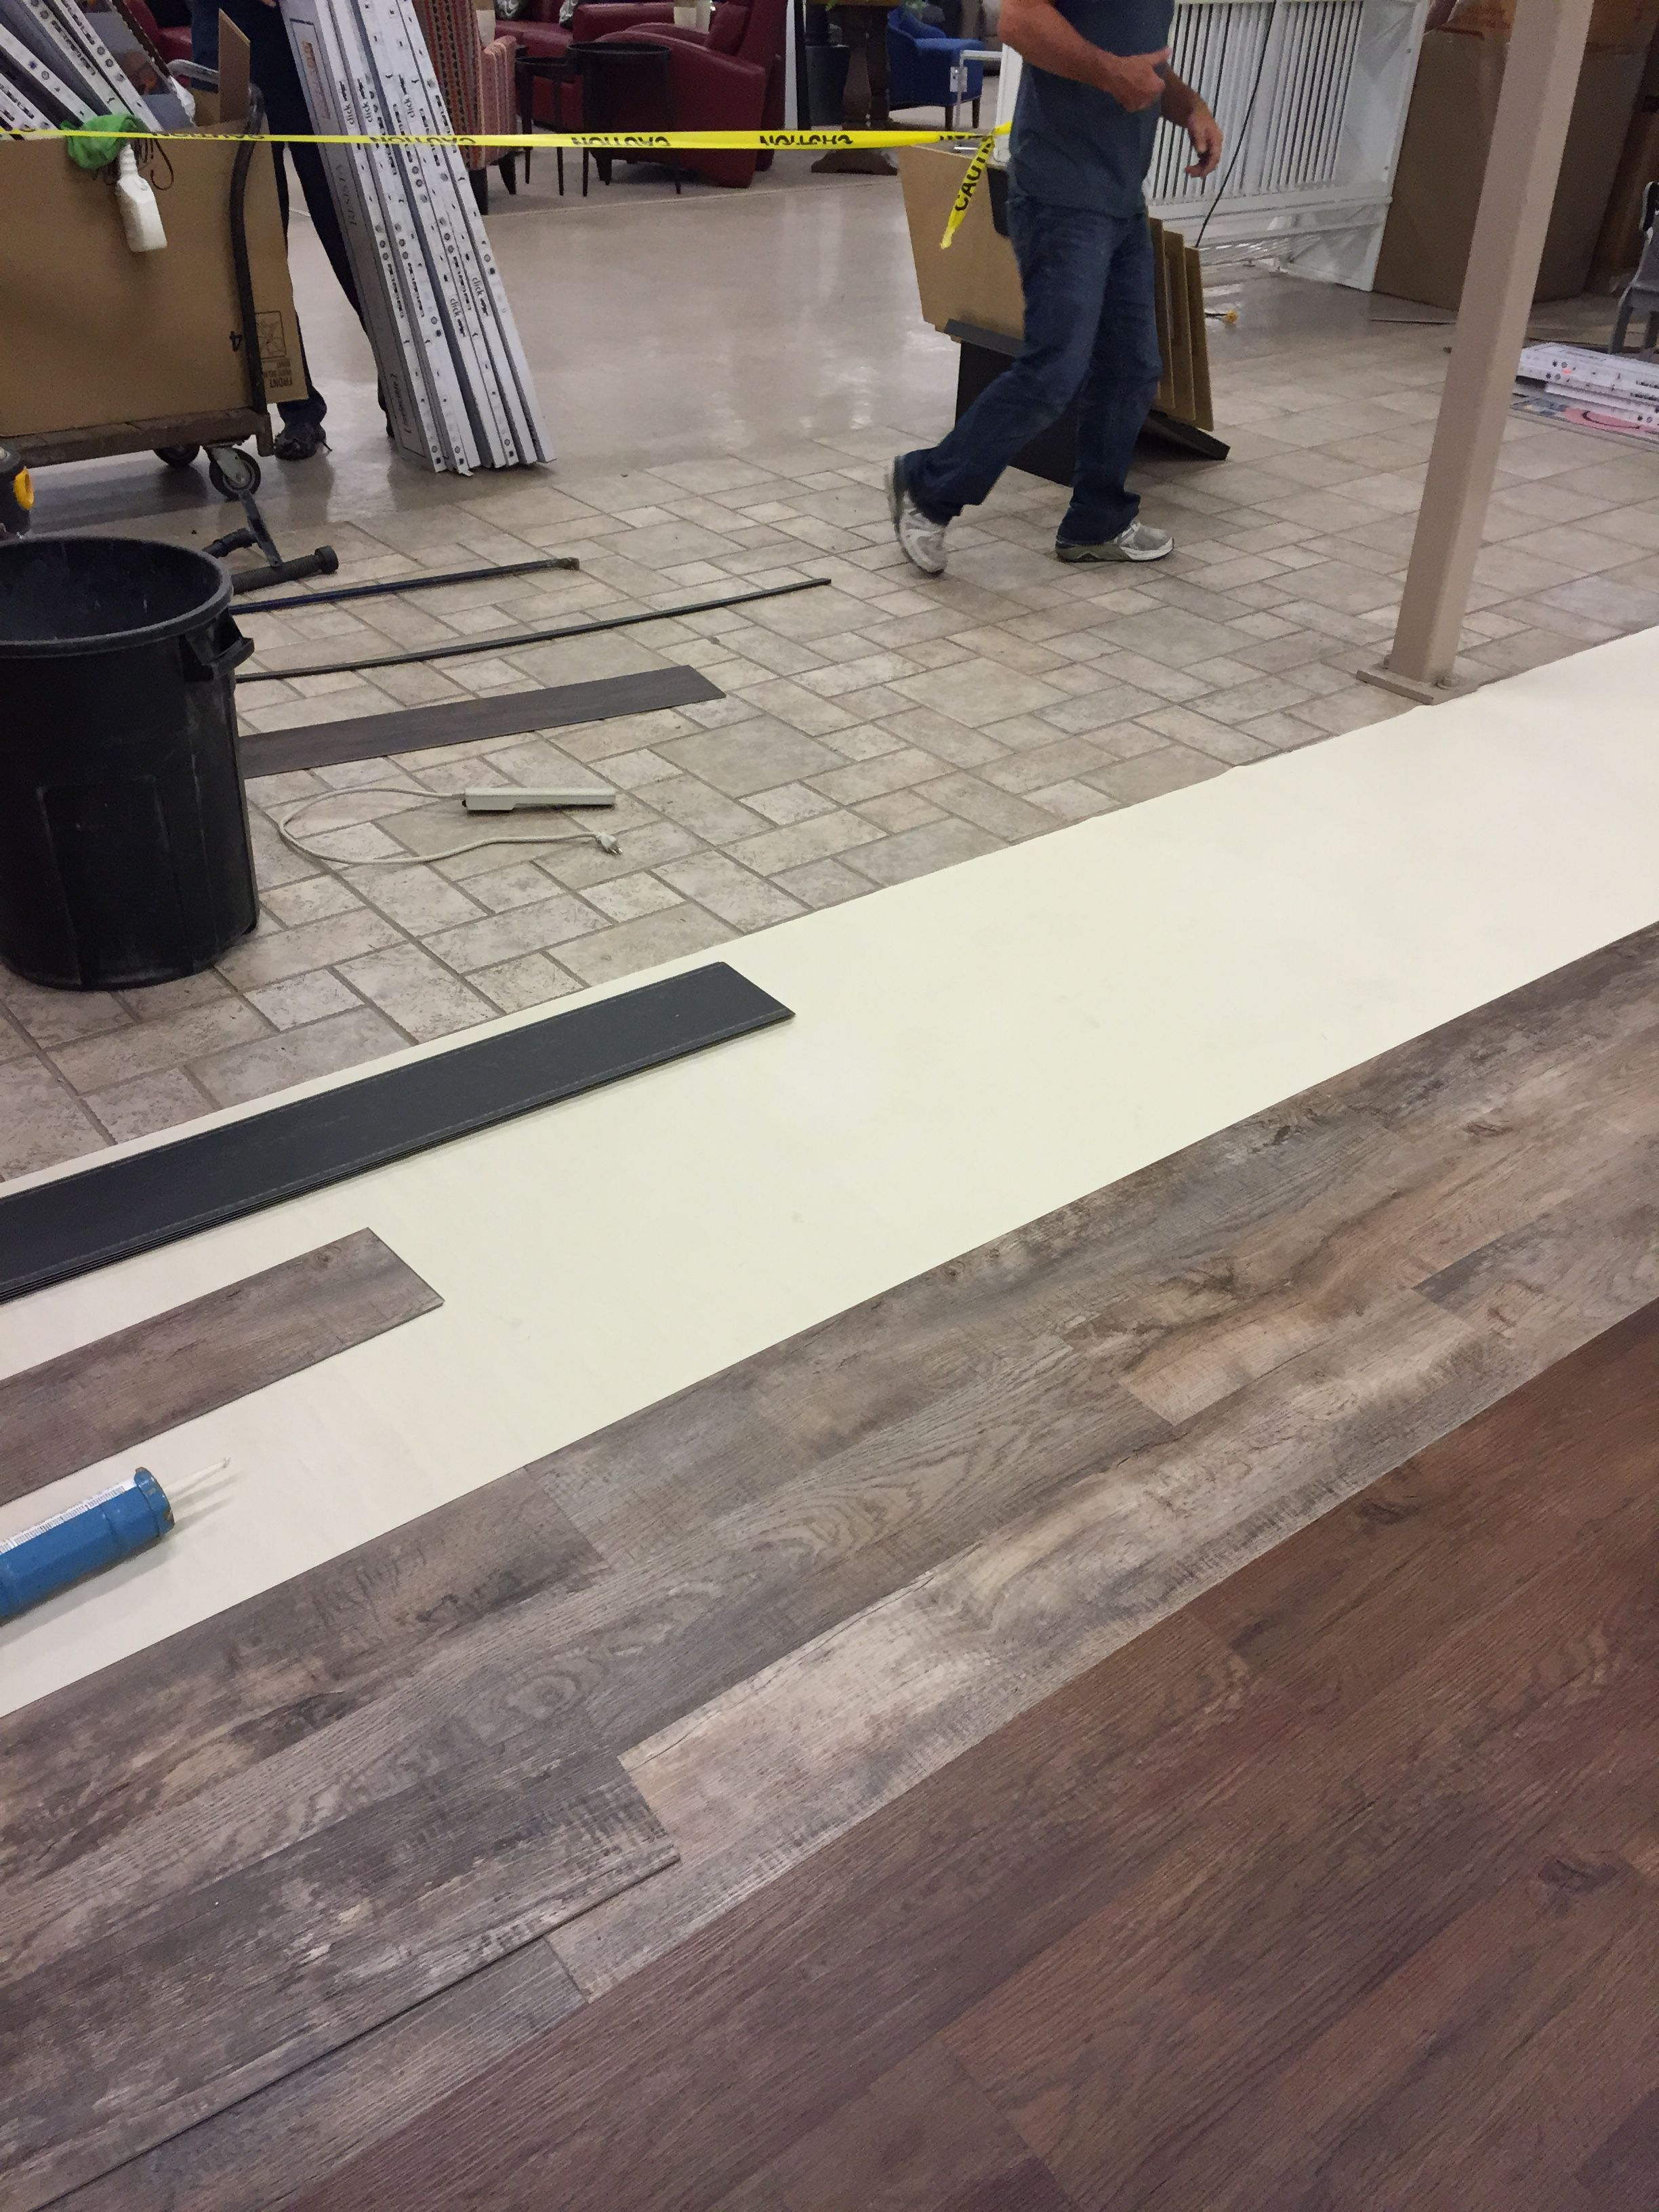 Our installers putting a luxury vinyl plank down using a floating our installers putting a luxury vinyl plank down using a floating installation using the pad underneath it goes right over the old ceramic tile that you dailygadgetfo Choice Image